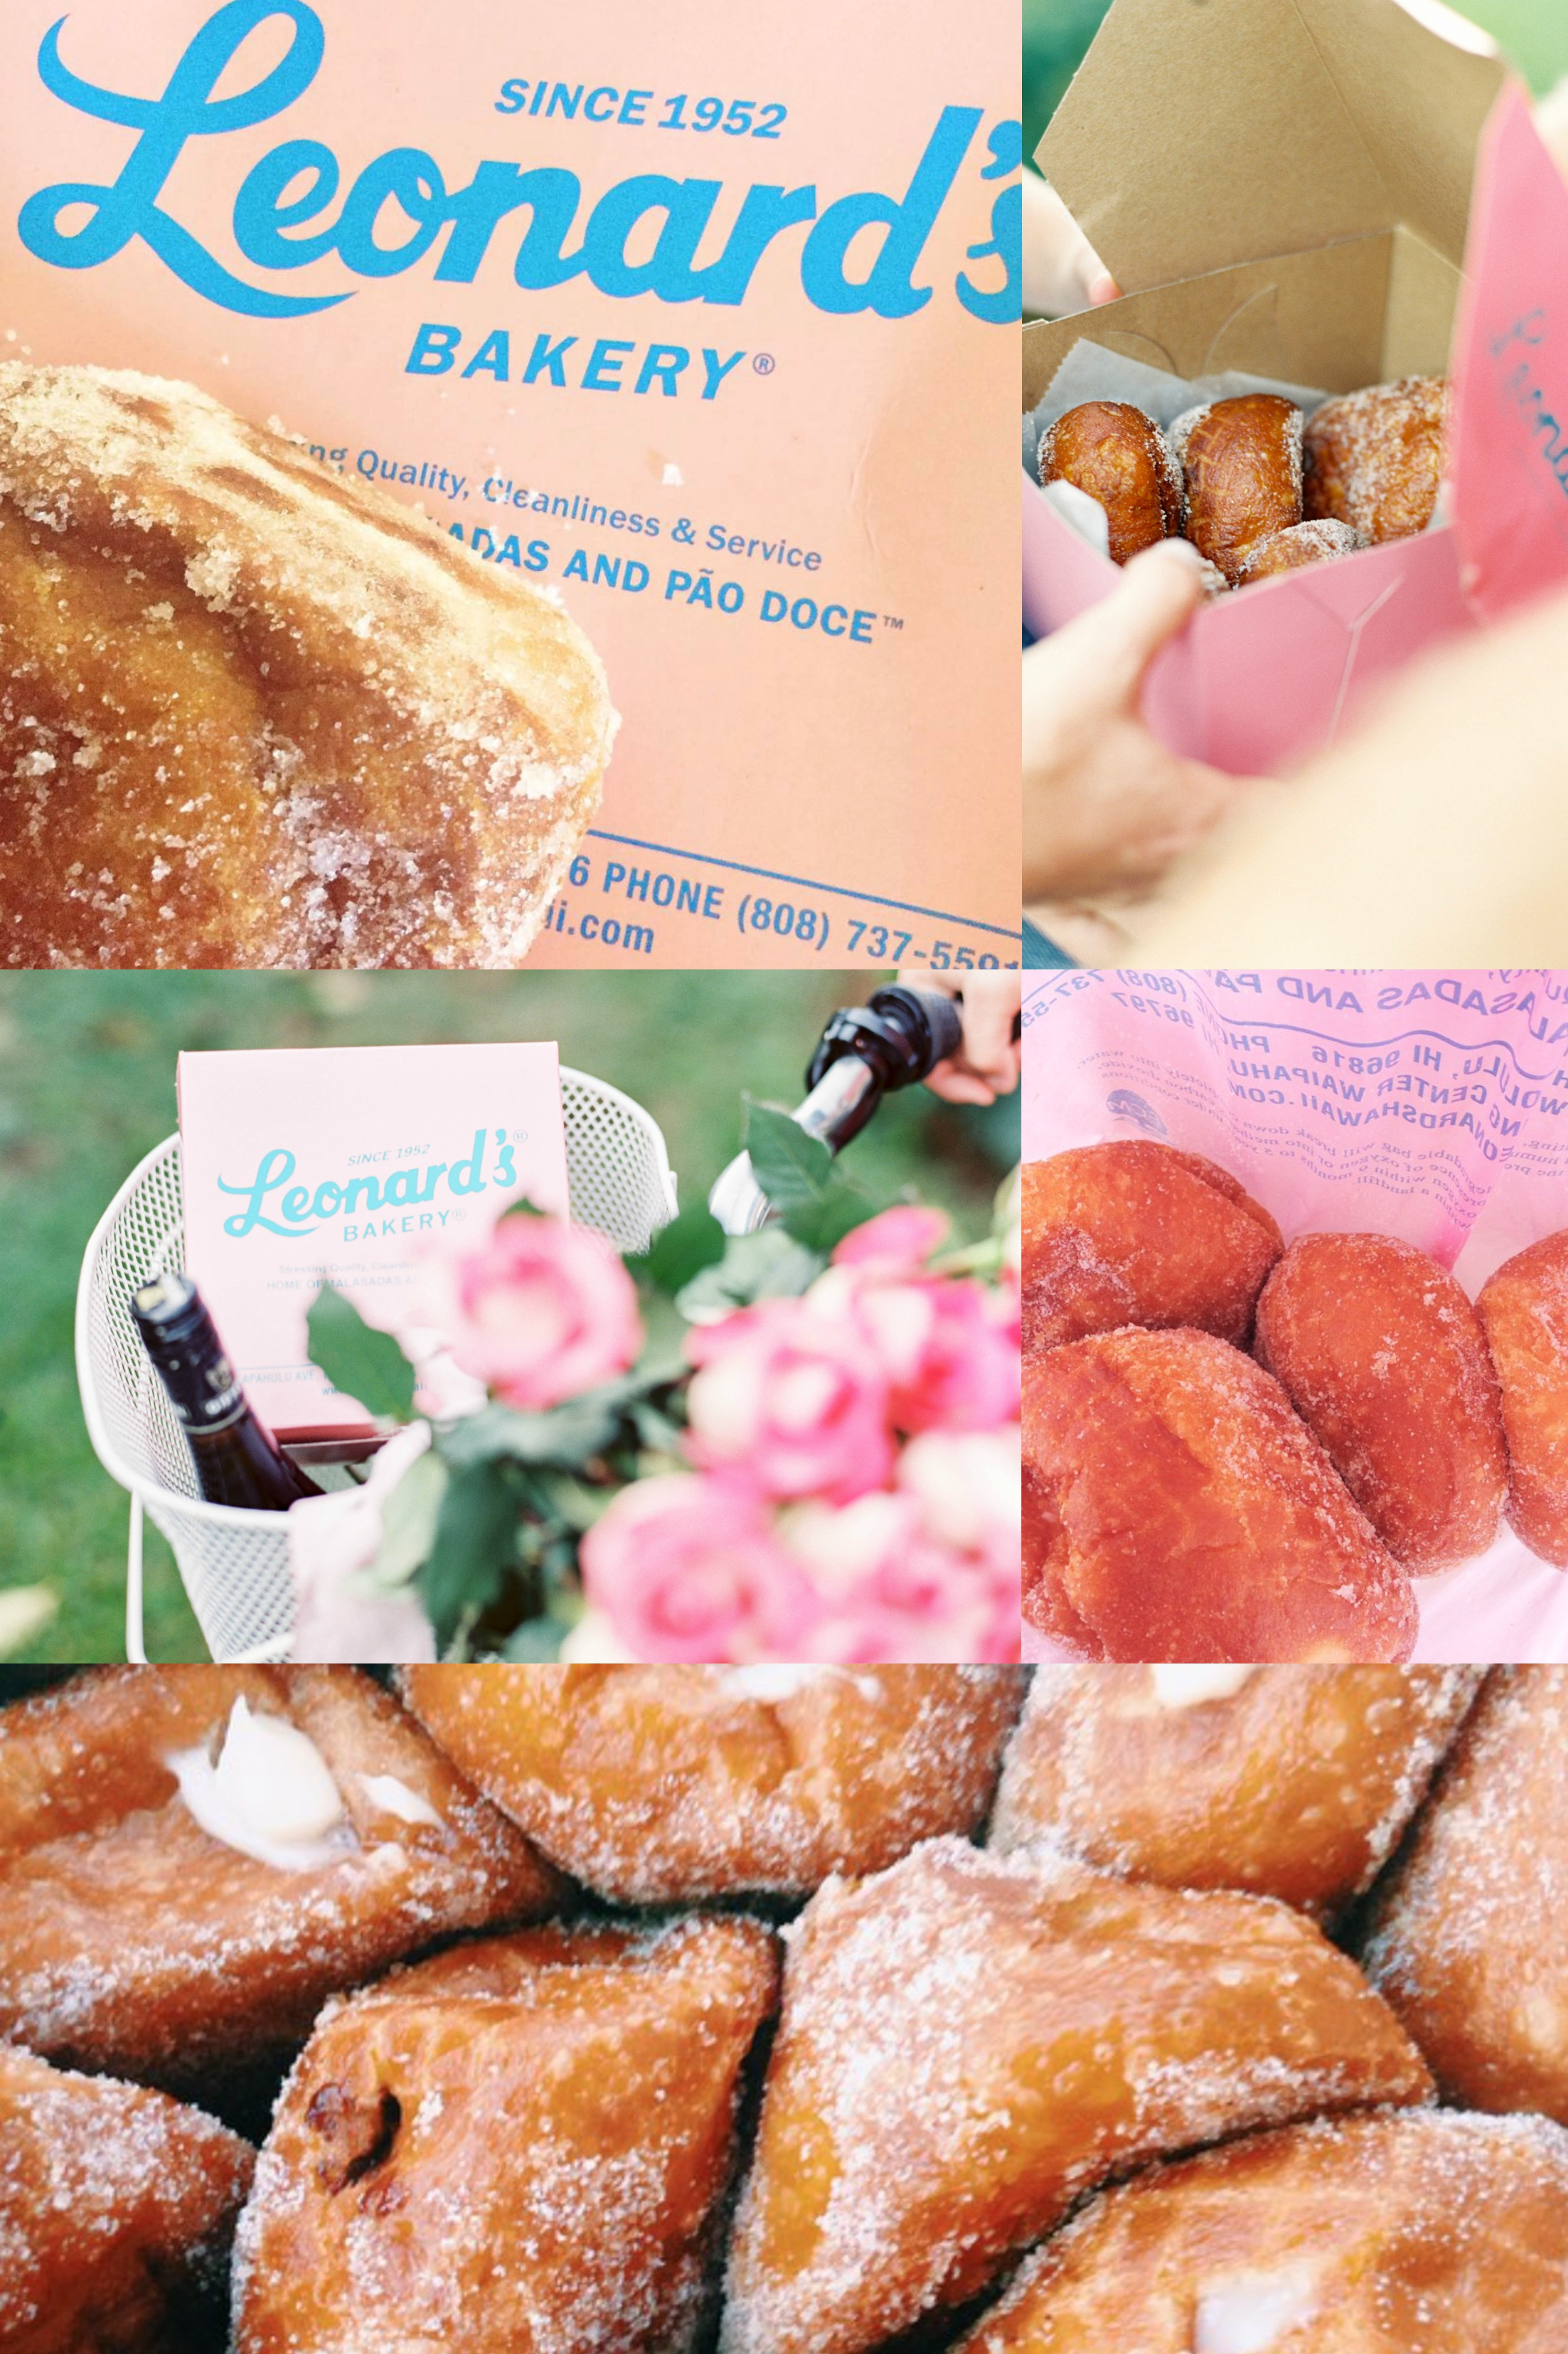 Leonard's Malasadas - The Instagram Guide To Honolulu - Instagram Worthy Spots Honolulu - Oahu Guide For Instagram - Best Places To Take Photos Honolulu - Oahu Vacation Guide - Where To Visit Hawaii - Hawaii Itinerary - Communikait by Kait Hanson